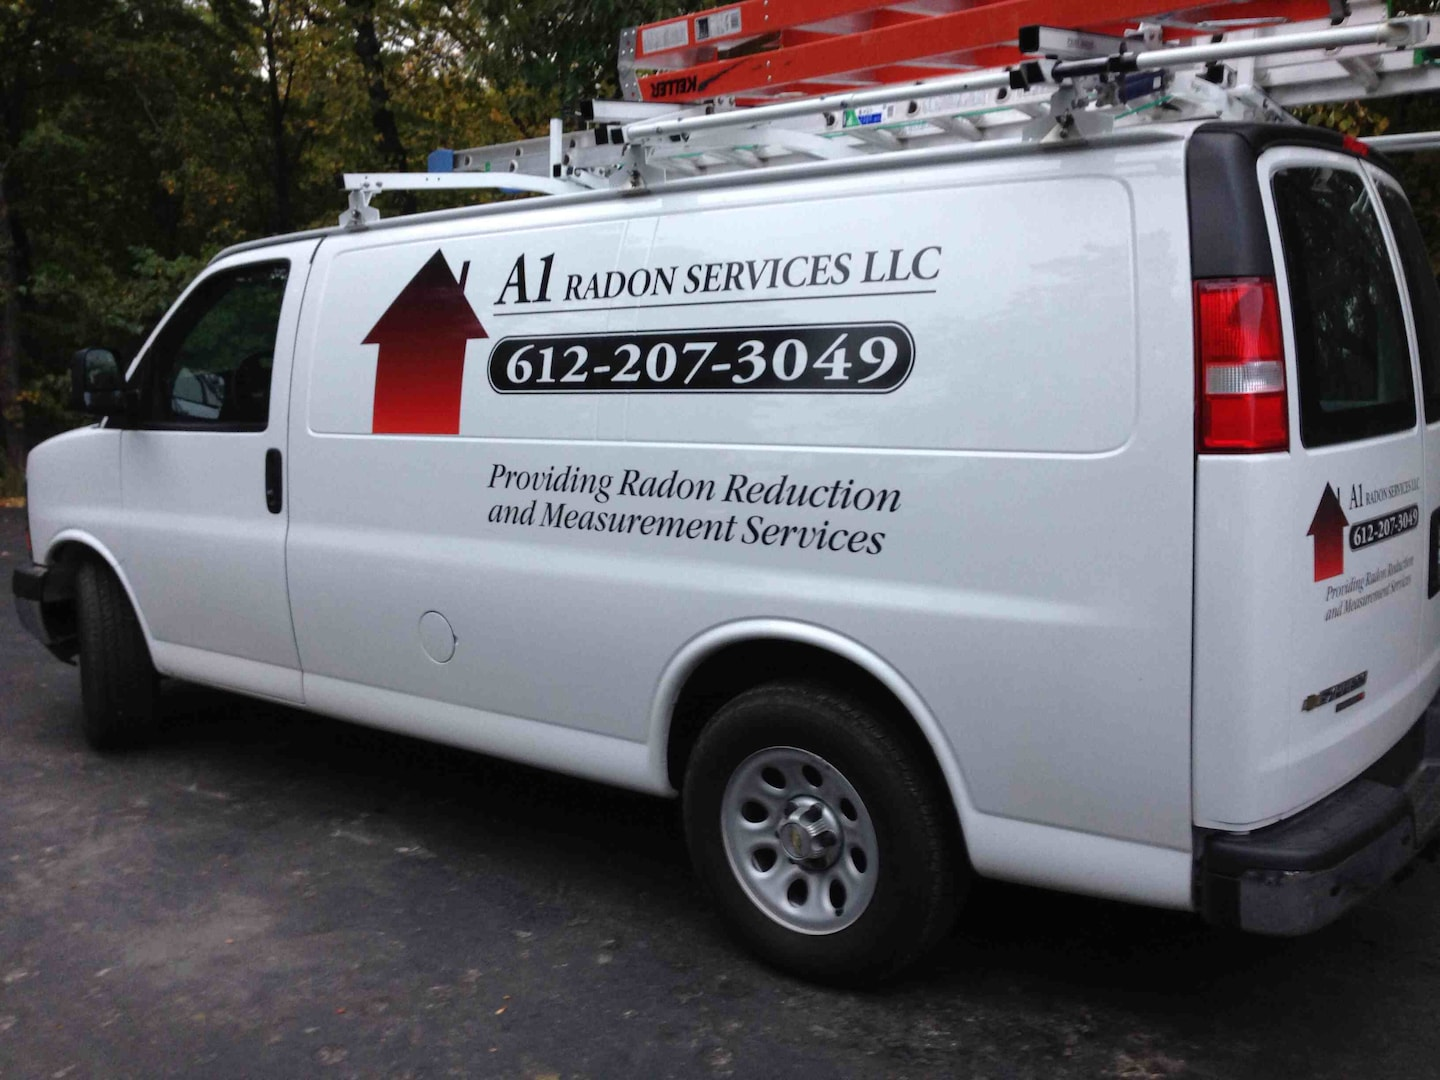 A1 Radon Services LLC